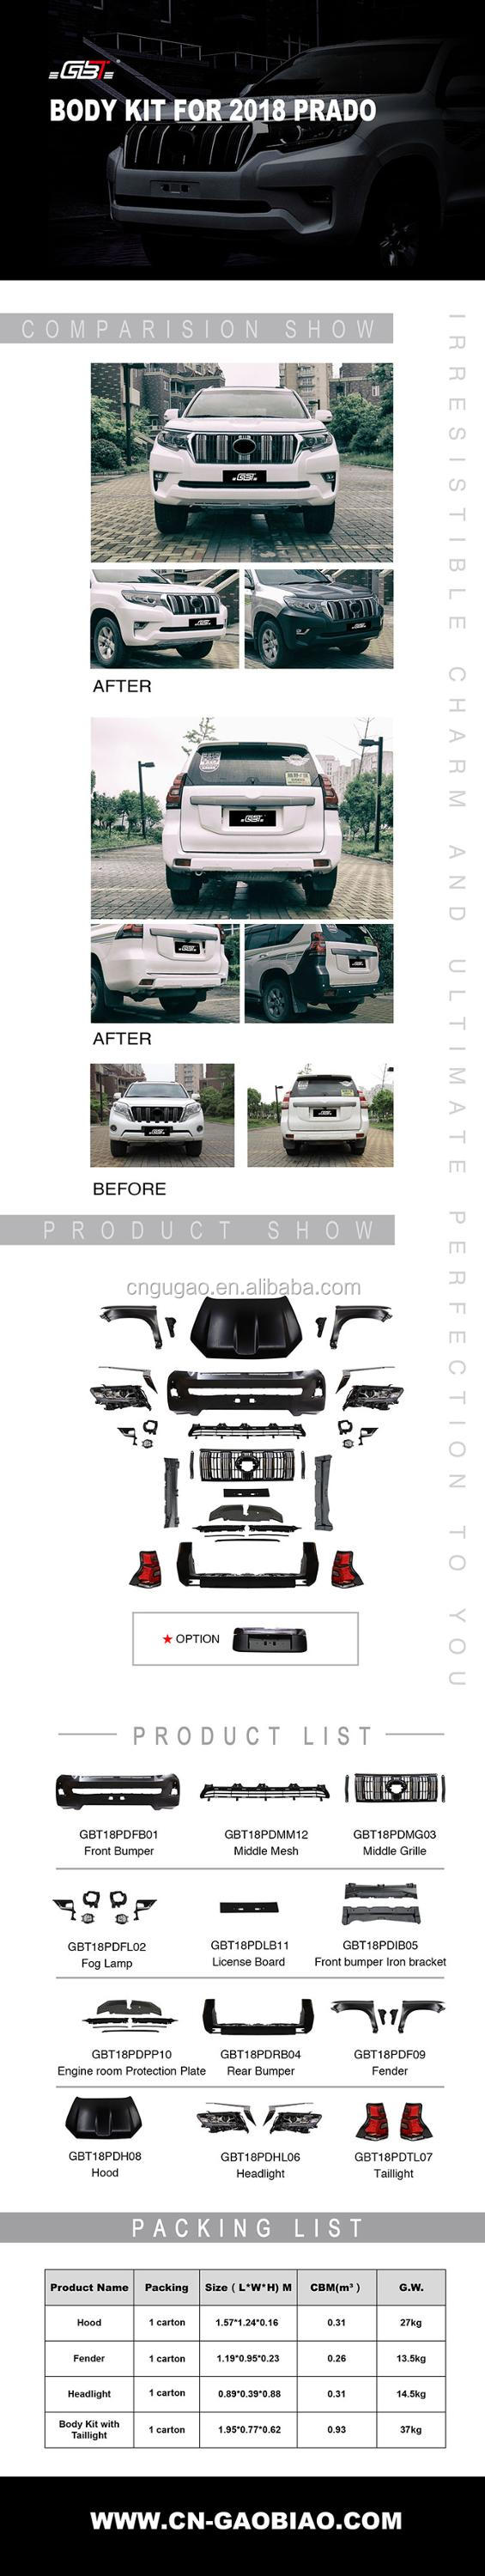 GBT auto parts front and rear  bumper and grille upgrade to 2018 body kit for Toyota Prado fj150 2010_2016